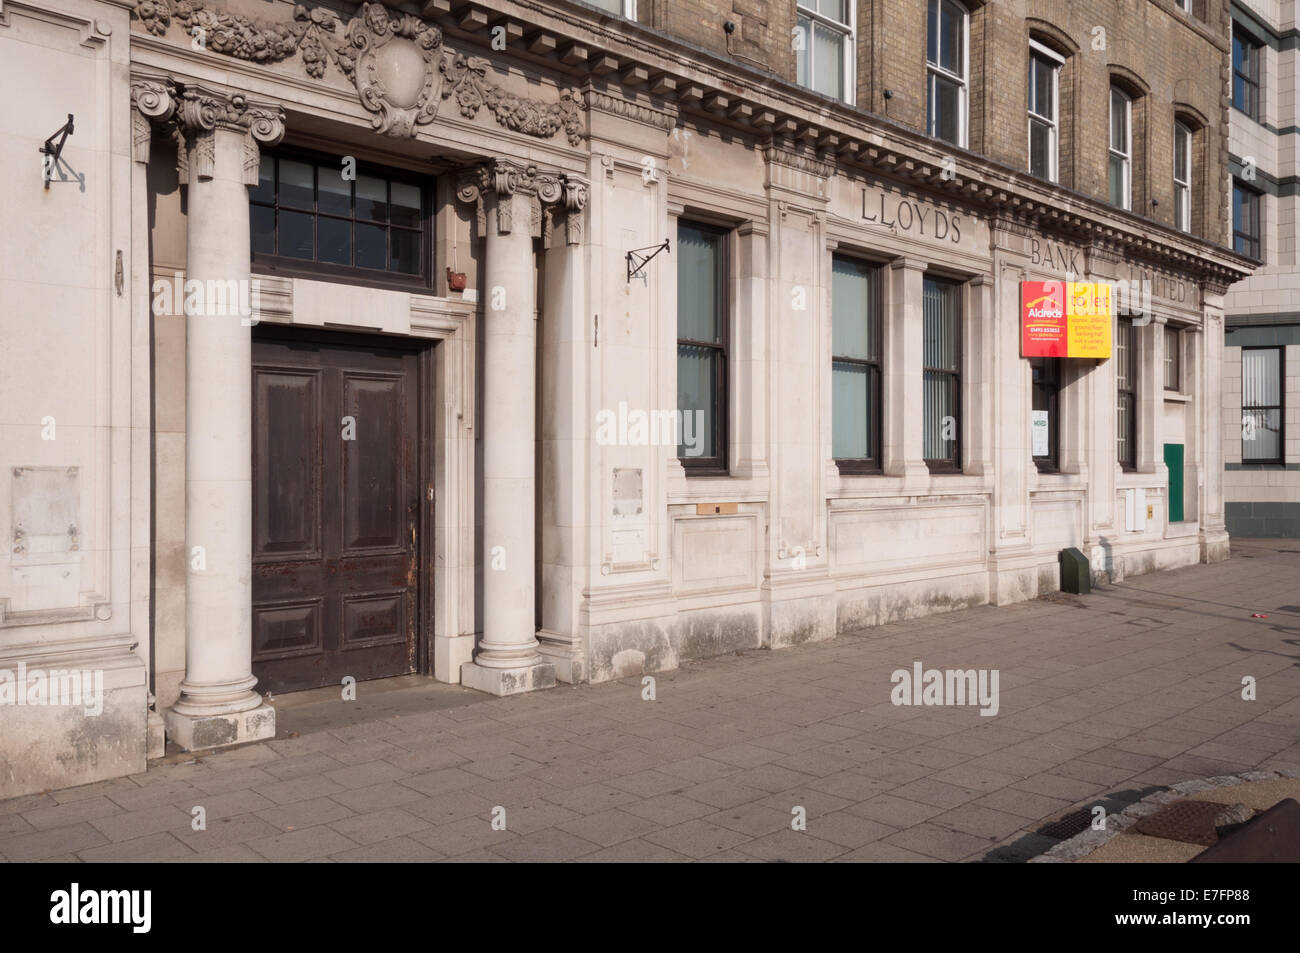 Closed former Lloyds Bank branch in Great Yarmouth - Stock Image